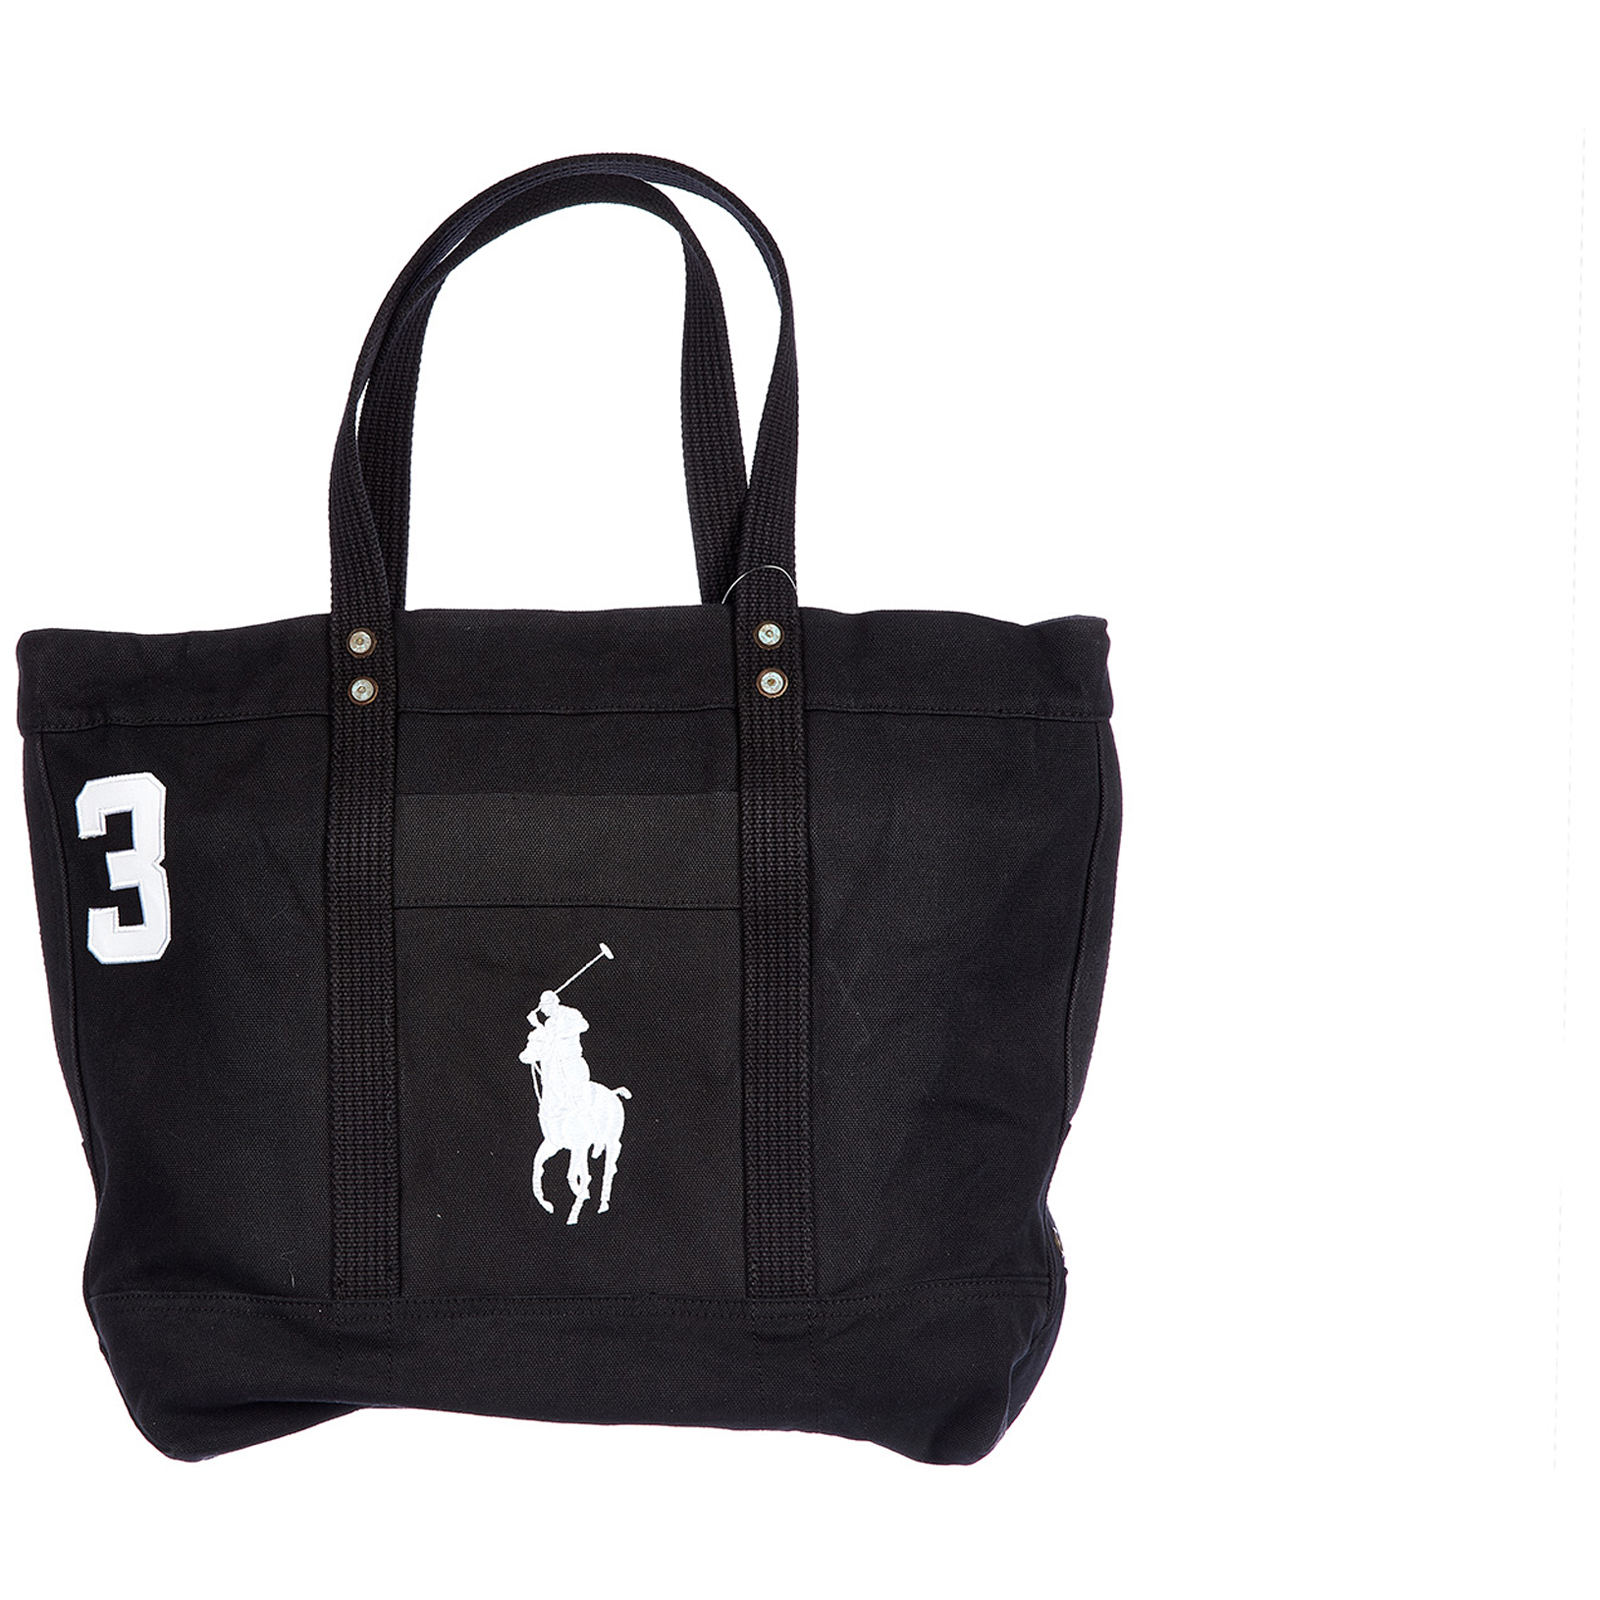 2a42ca4d3636d Shopping bag Polo Ralph Lauren A92 AL336 C5079 V003 nero